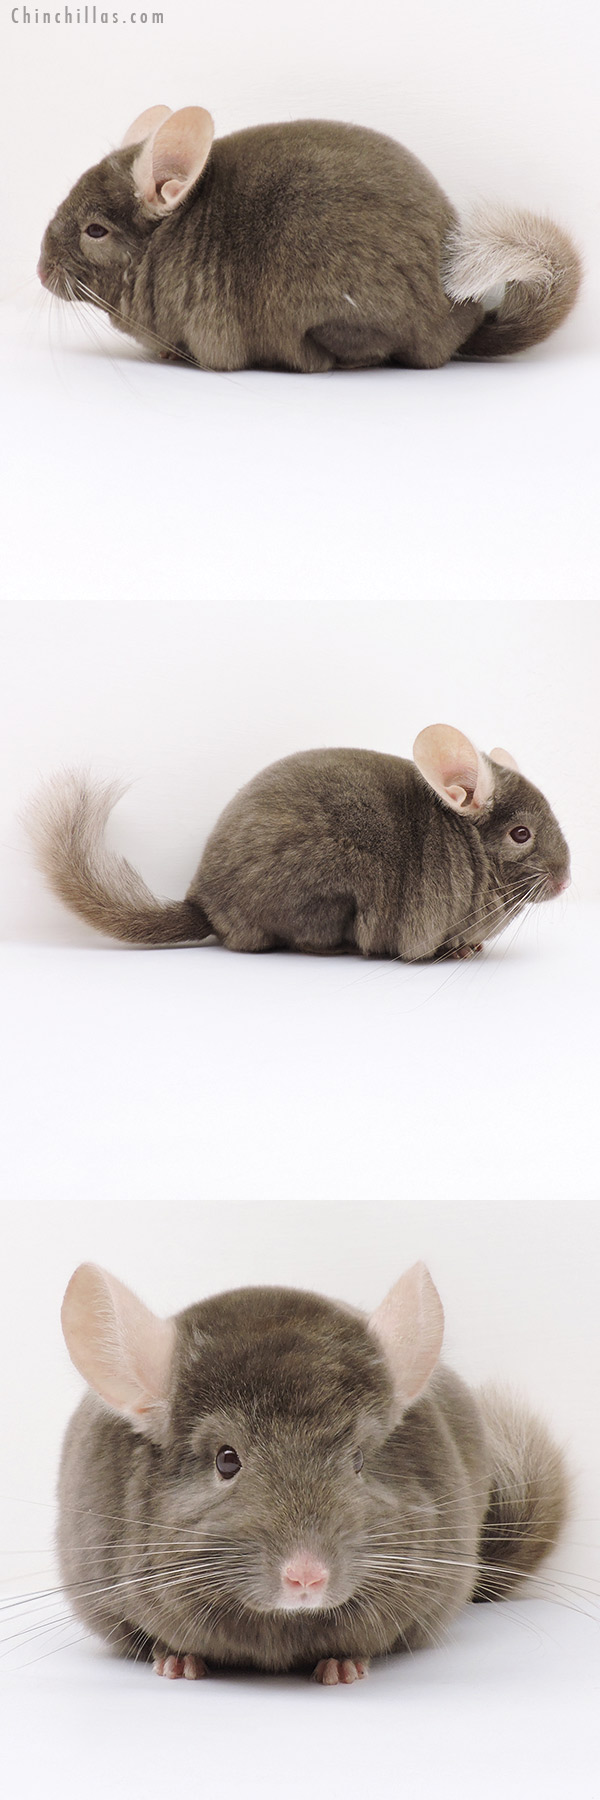 16273 Top Show Quality Tan Male Chinchilla